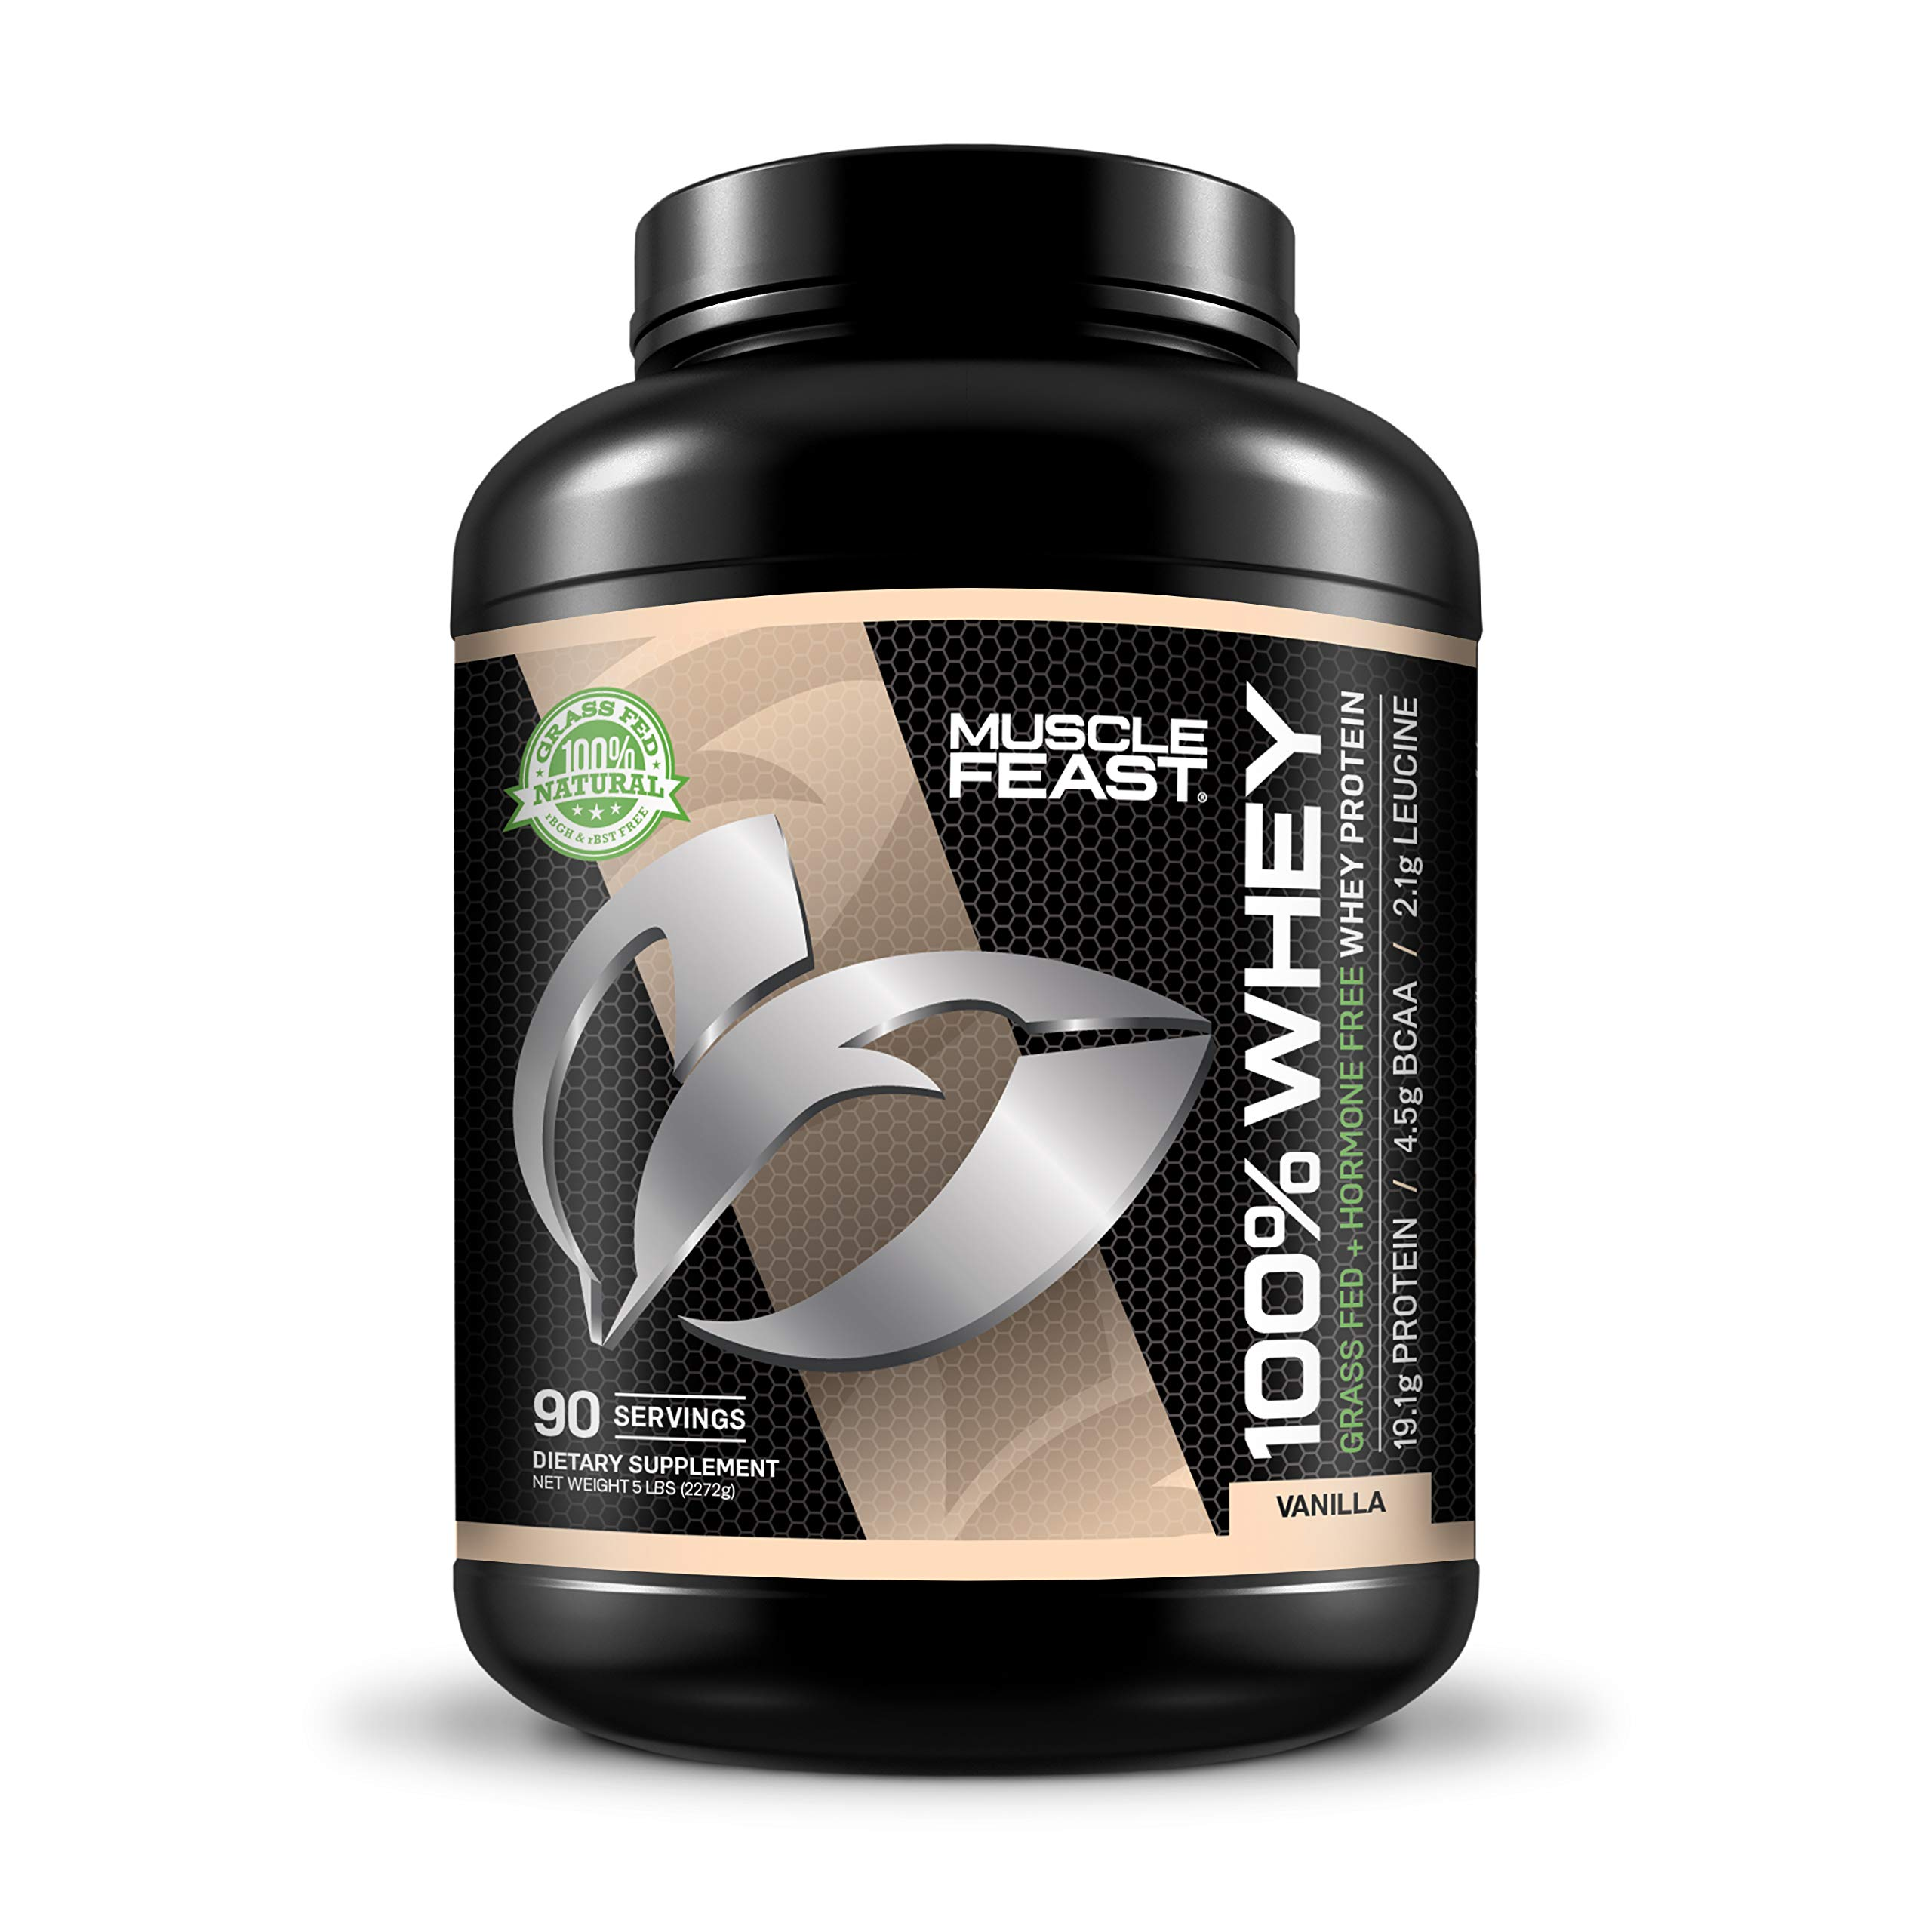 100% Whey Protein   Grass Fed & Hormone Free   Blend of Isolate, Concentrate and Hydrolyzed Whey Protein (5lb, Vanilla) by Muscle Feast